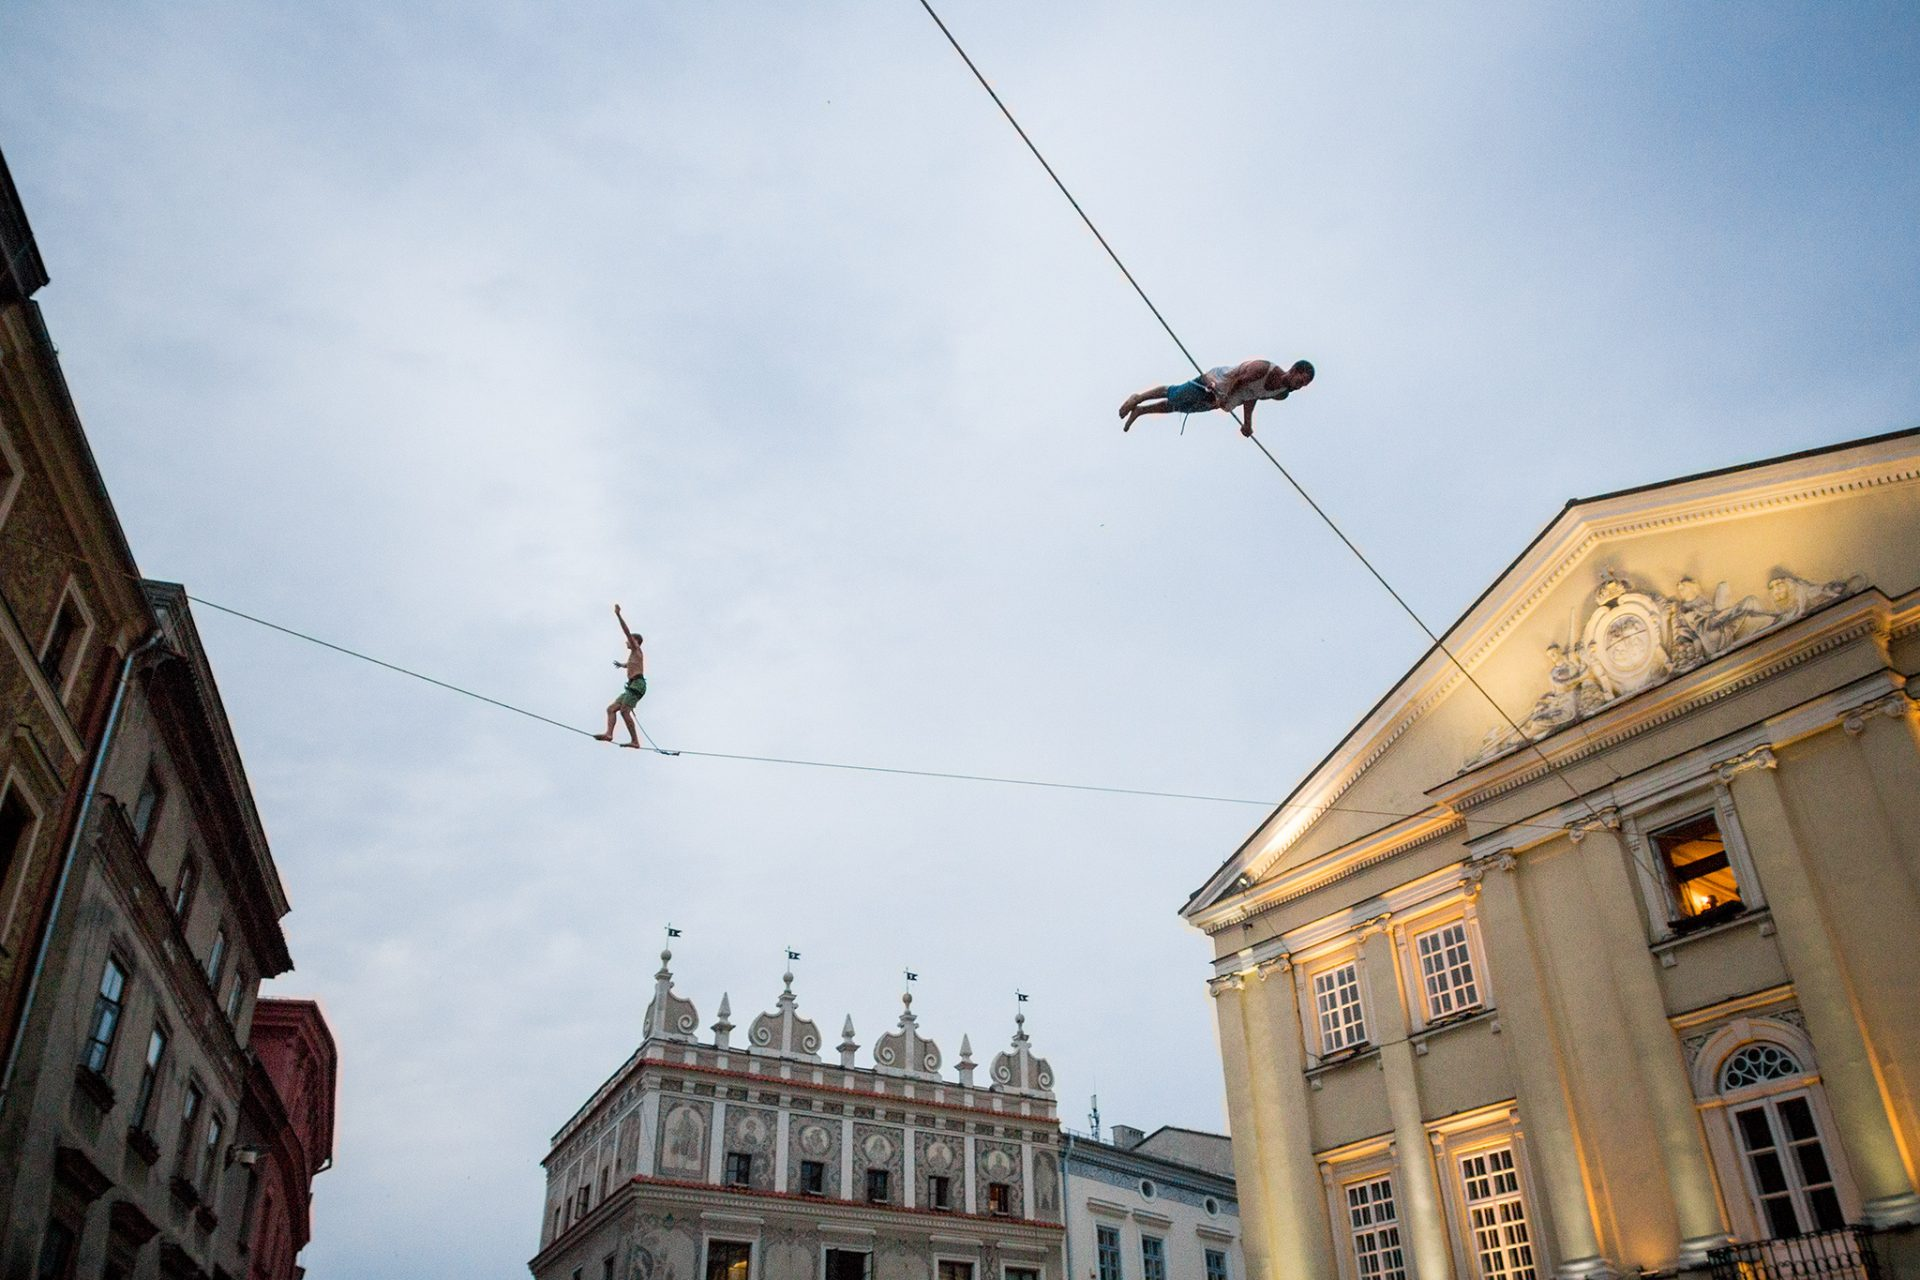 orosz_adam_outdoorinhales_highline-urban_highline_festival_2014_lublin_05